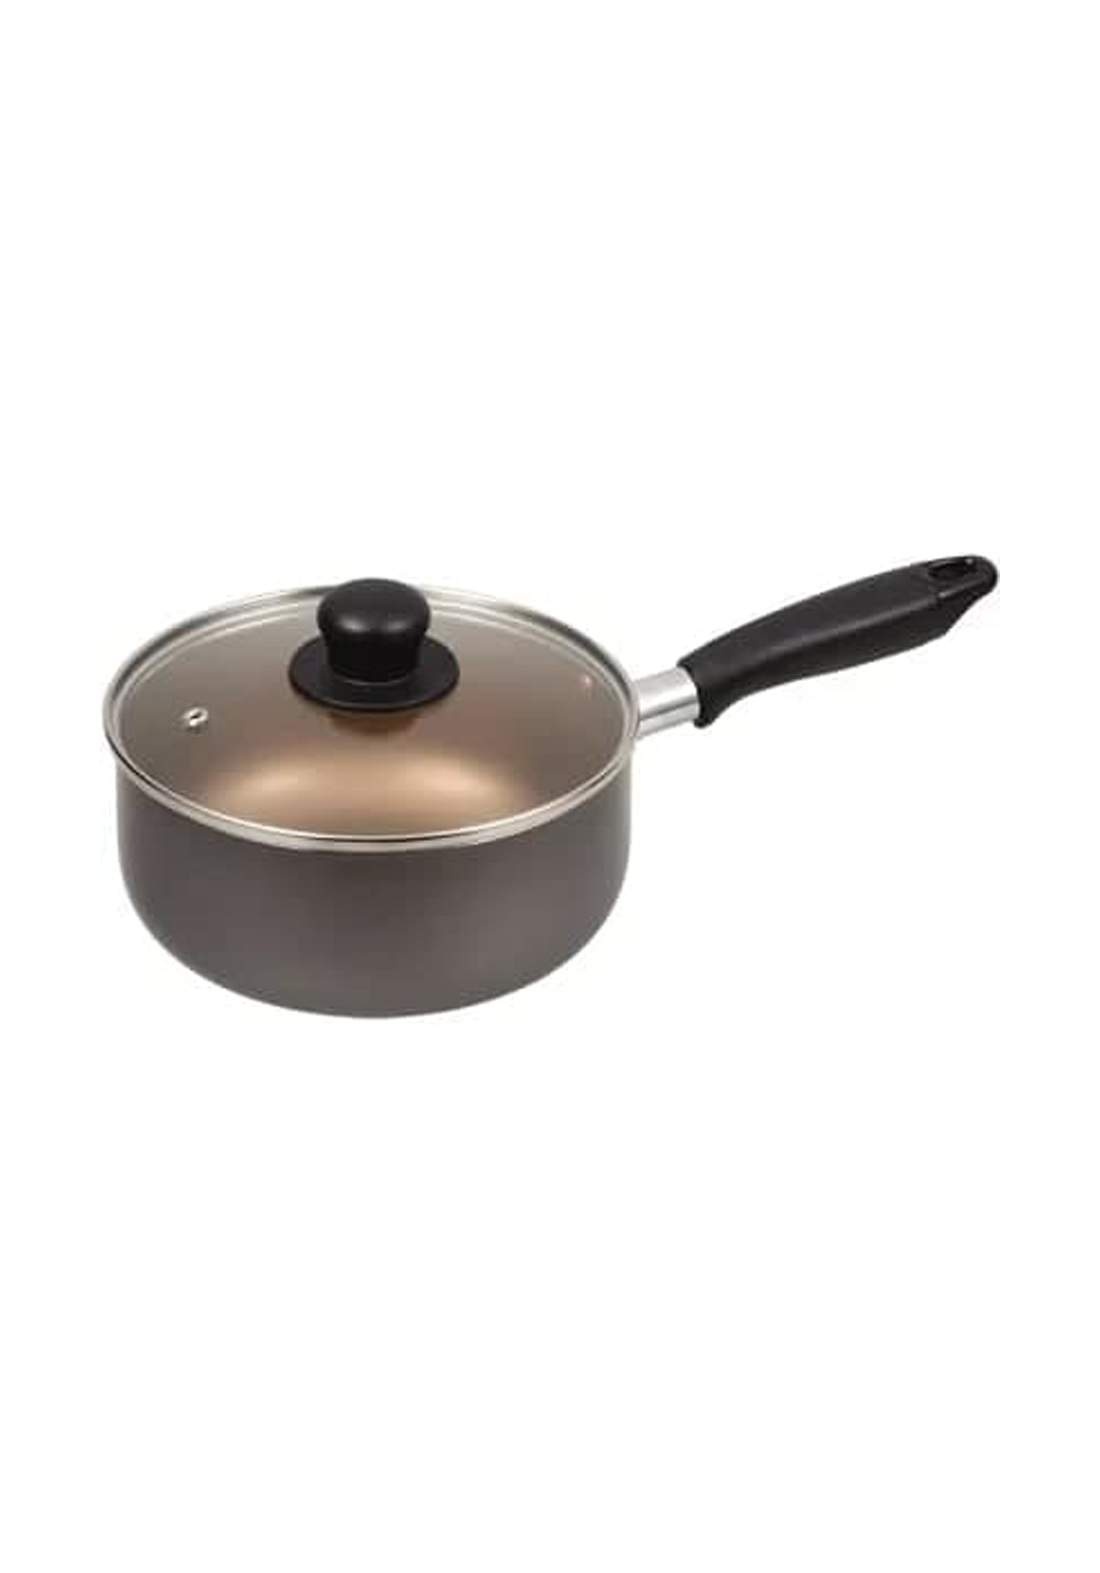 Pearl Metal HB8012 Dinners Fluorine One-Handed Pot 18cm قدر طعام